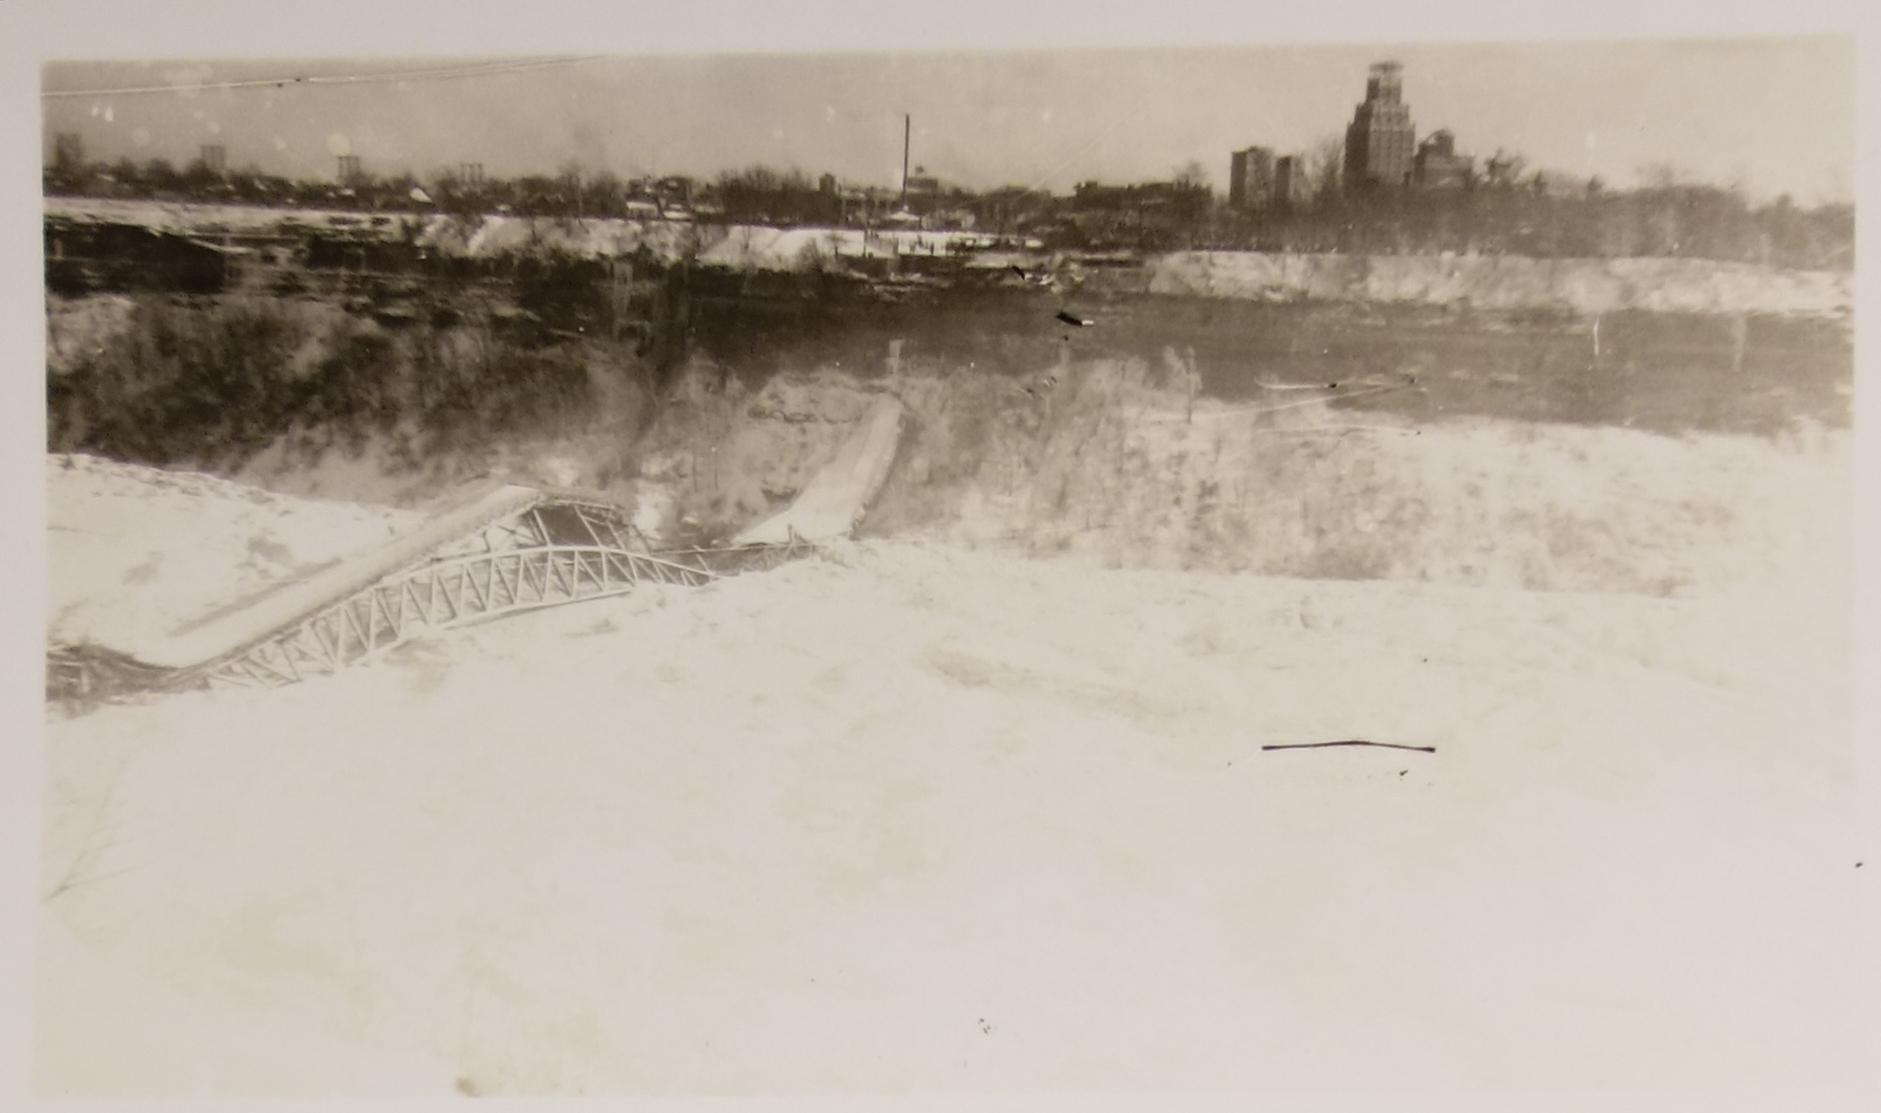 Collapsed Honeymoon Bridge (January,1938) The Honeymoon Bridge laying on the ice bridge which caused it to collapse. Black and white photograph. Steel structure beneath bridge with snow covered wooden surface; the bridge collapsed with a rise in the middle. Niagara Falls, New York in the background of the photo.